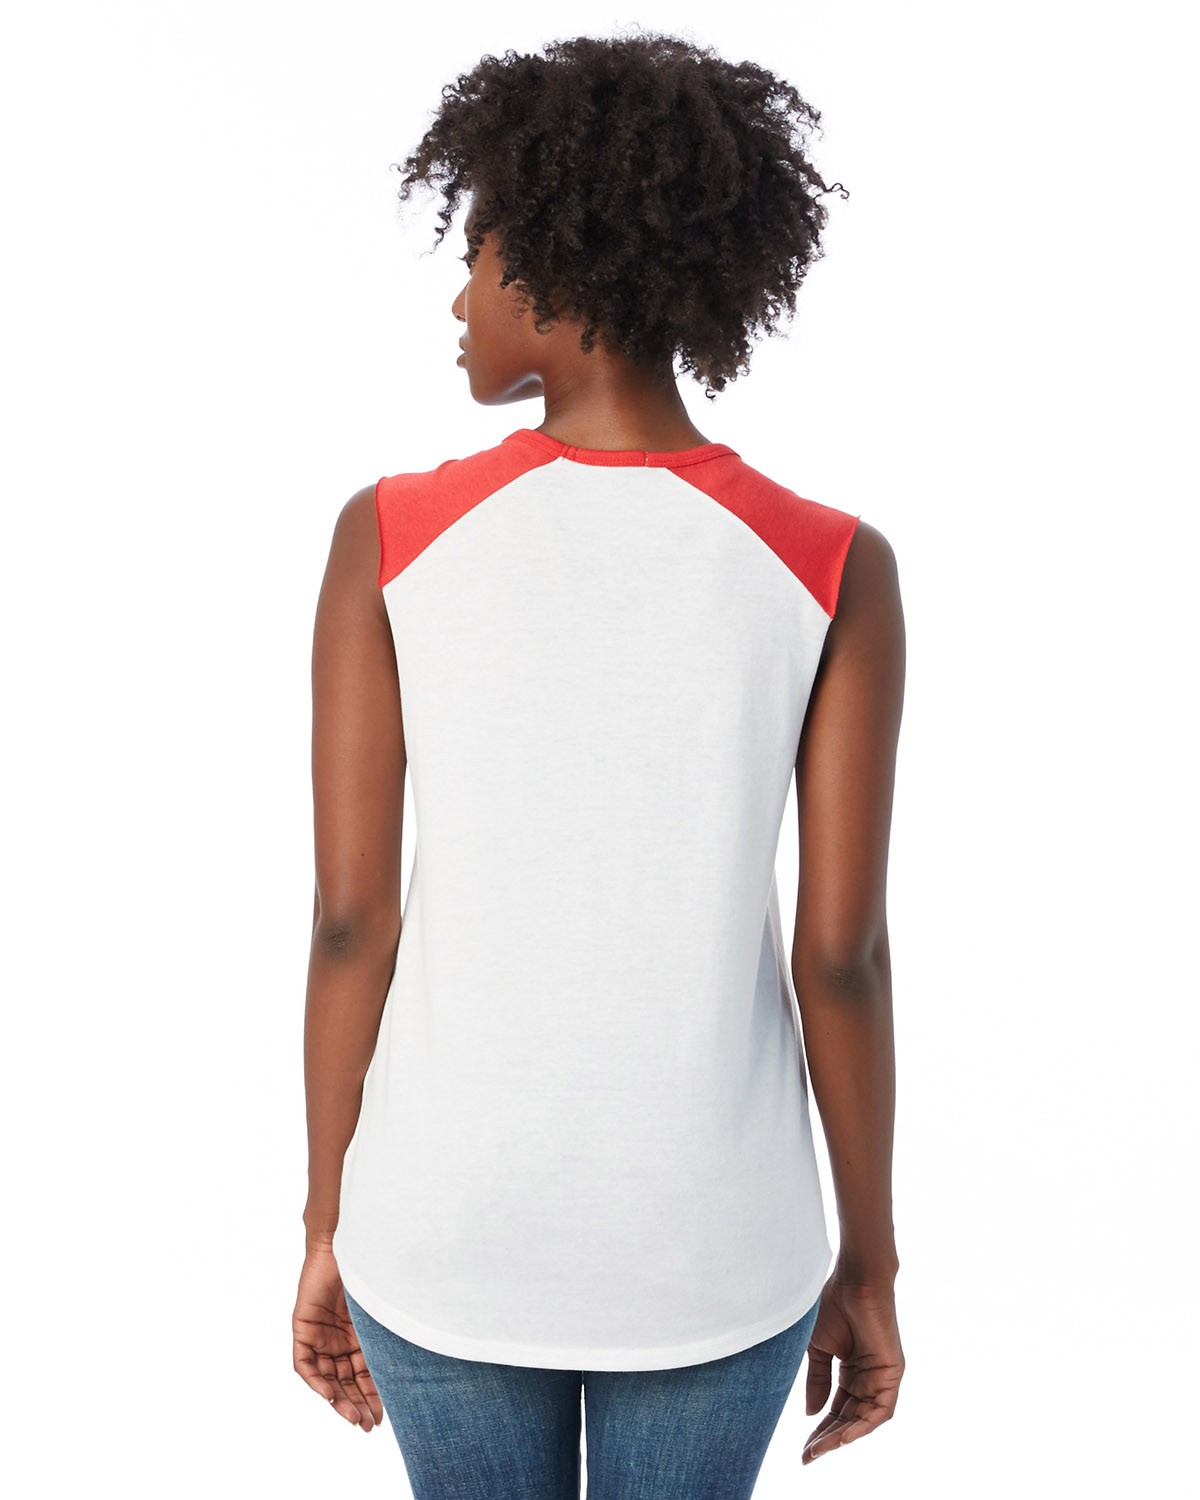 5104BP Alternative WHITE/RED